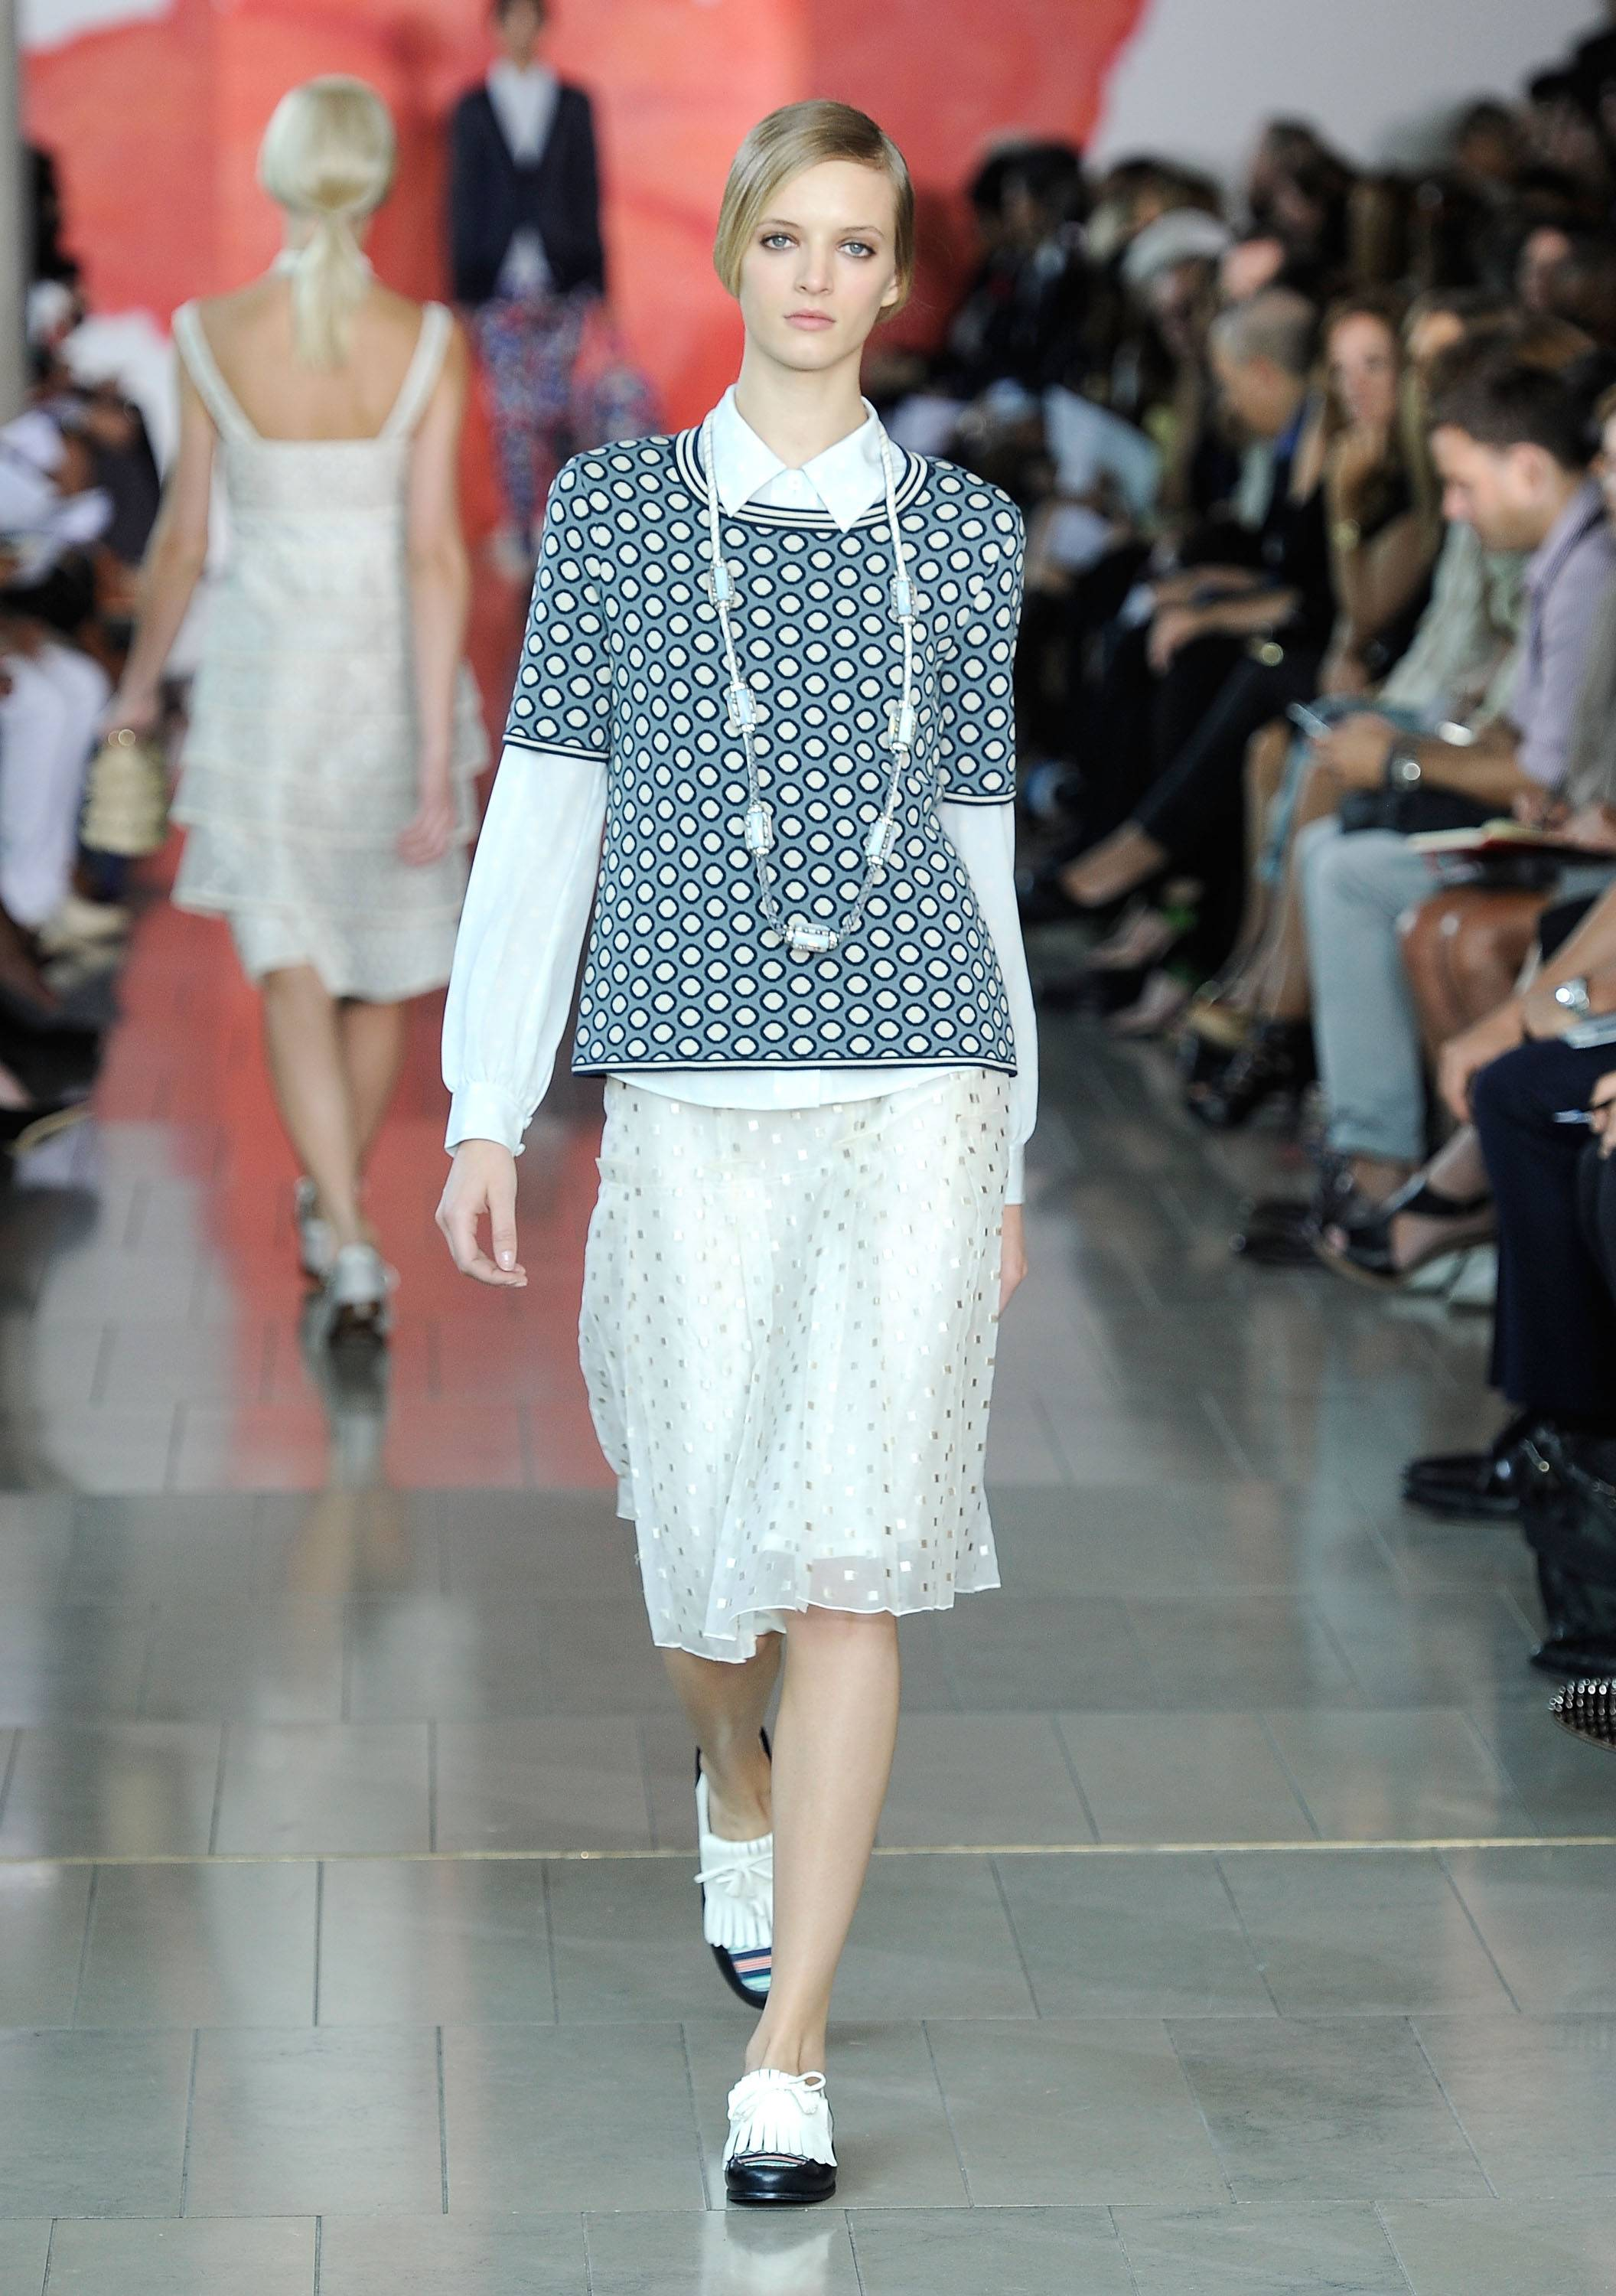 Tory Burch Runway Presentation 12, Mercedes Benz Fashion Week, s/s 2012